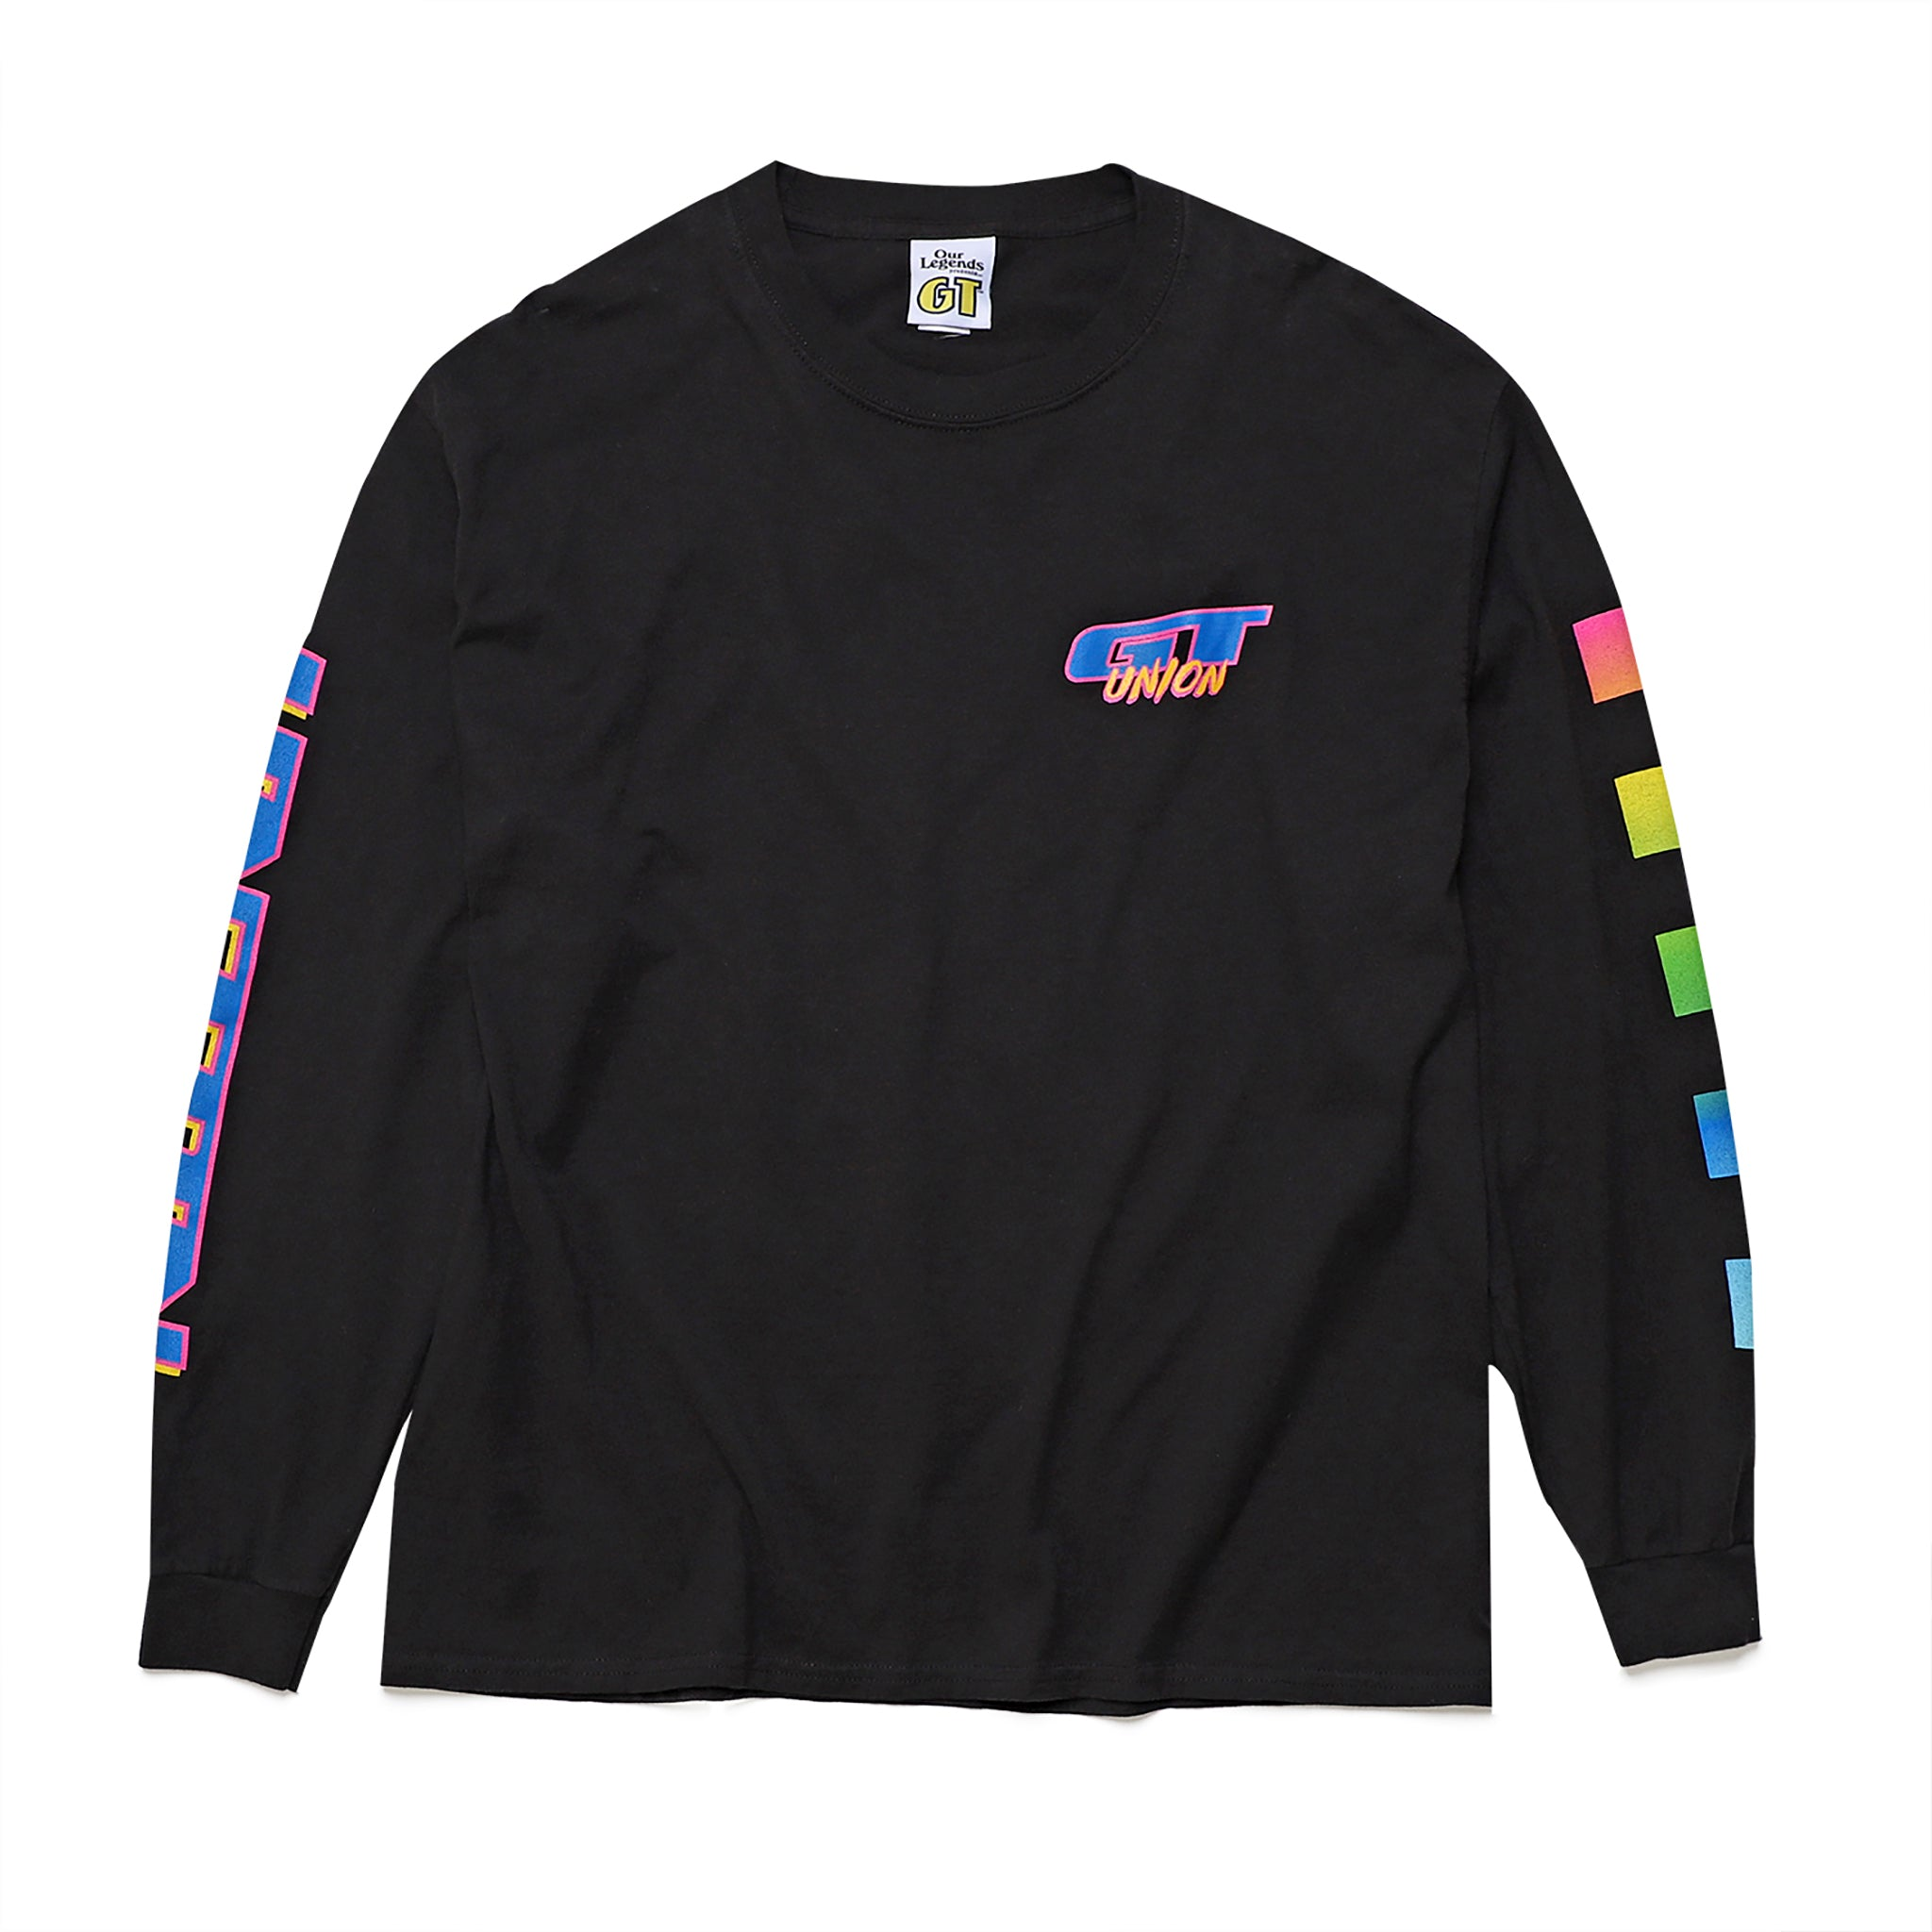 GT x UNION - GT Long Sleeve - Black